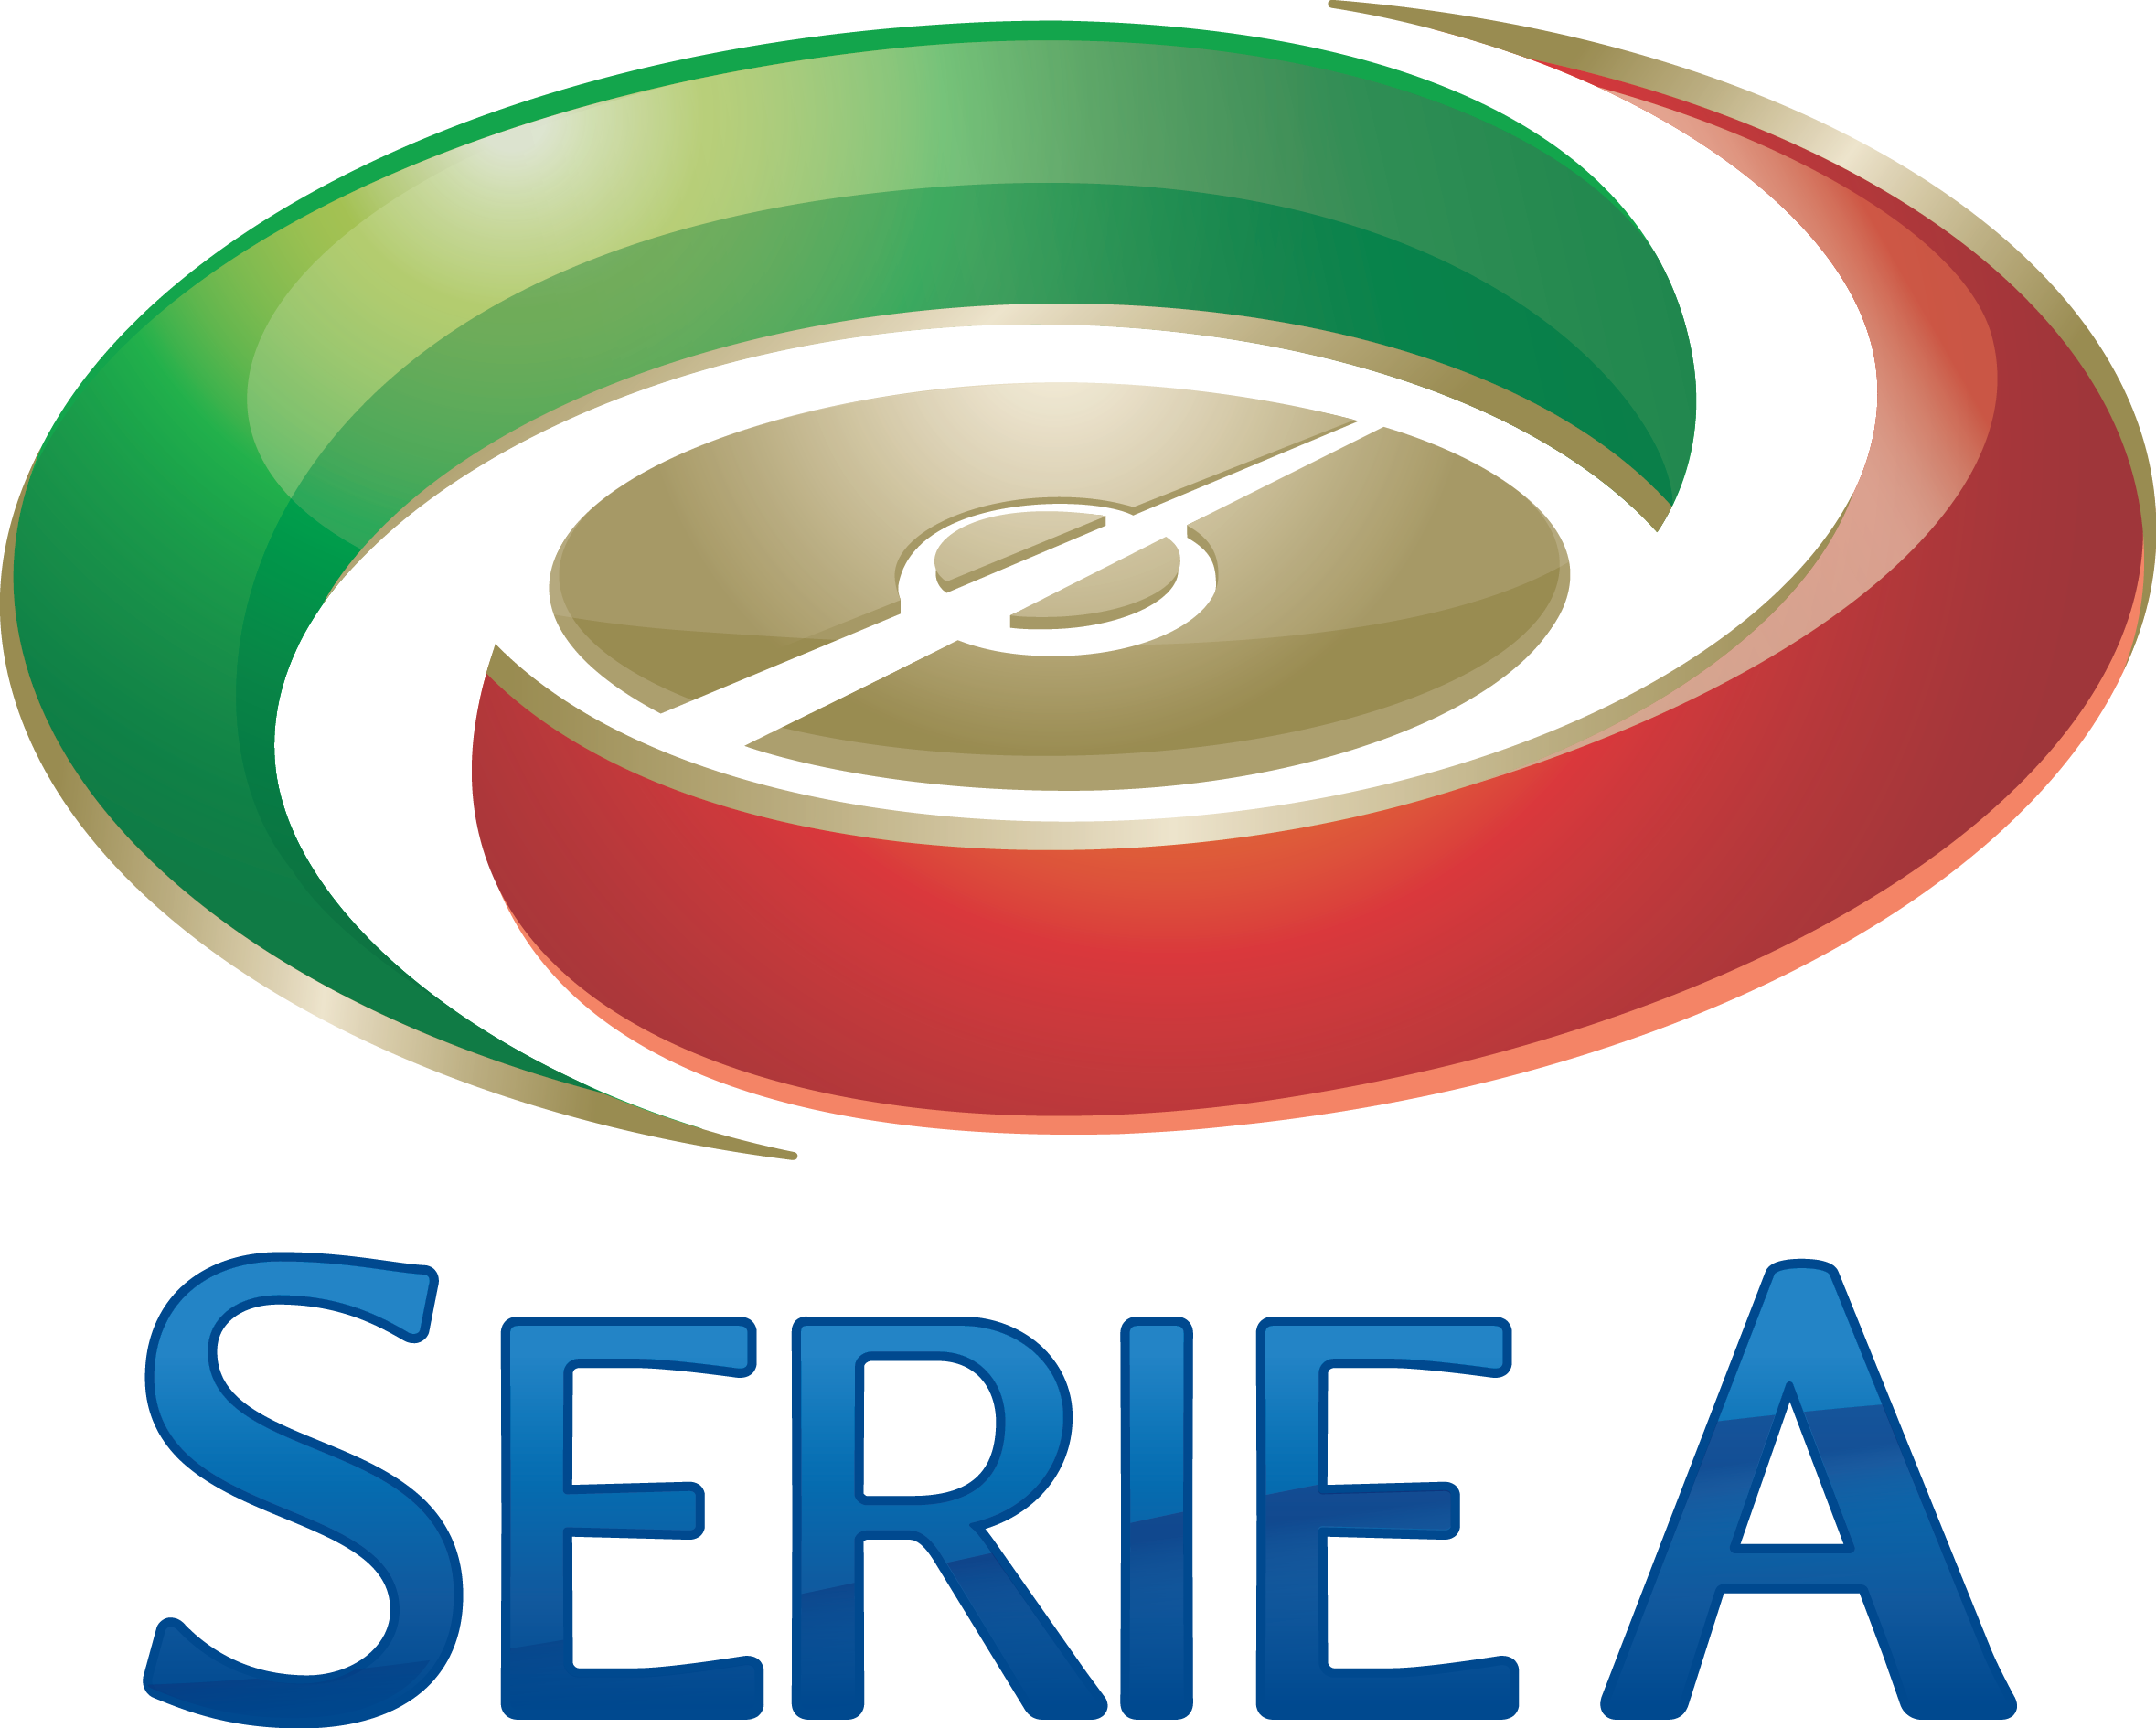 Fiorentina vs AC Milan 2-0 All goals and highlights 23/08/2015